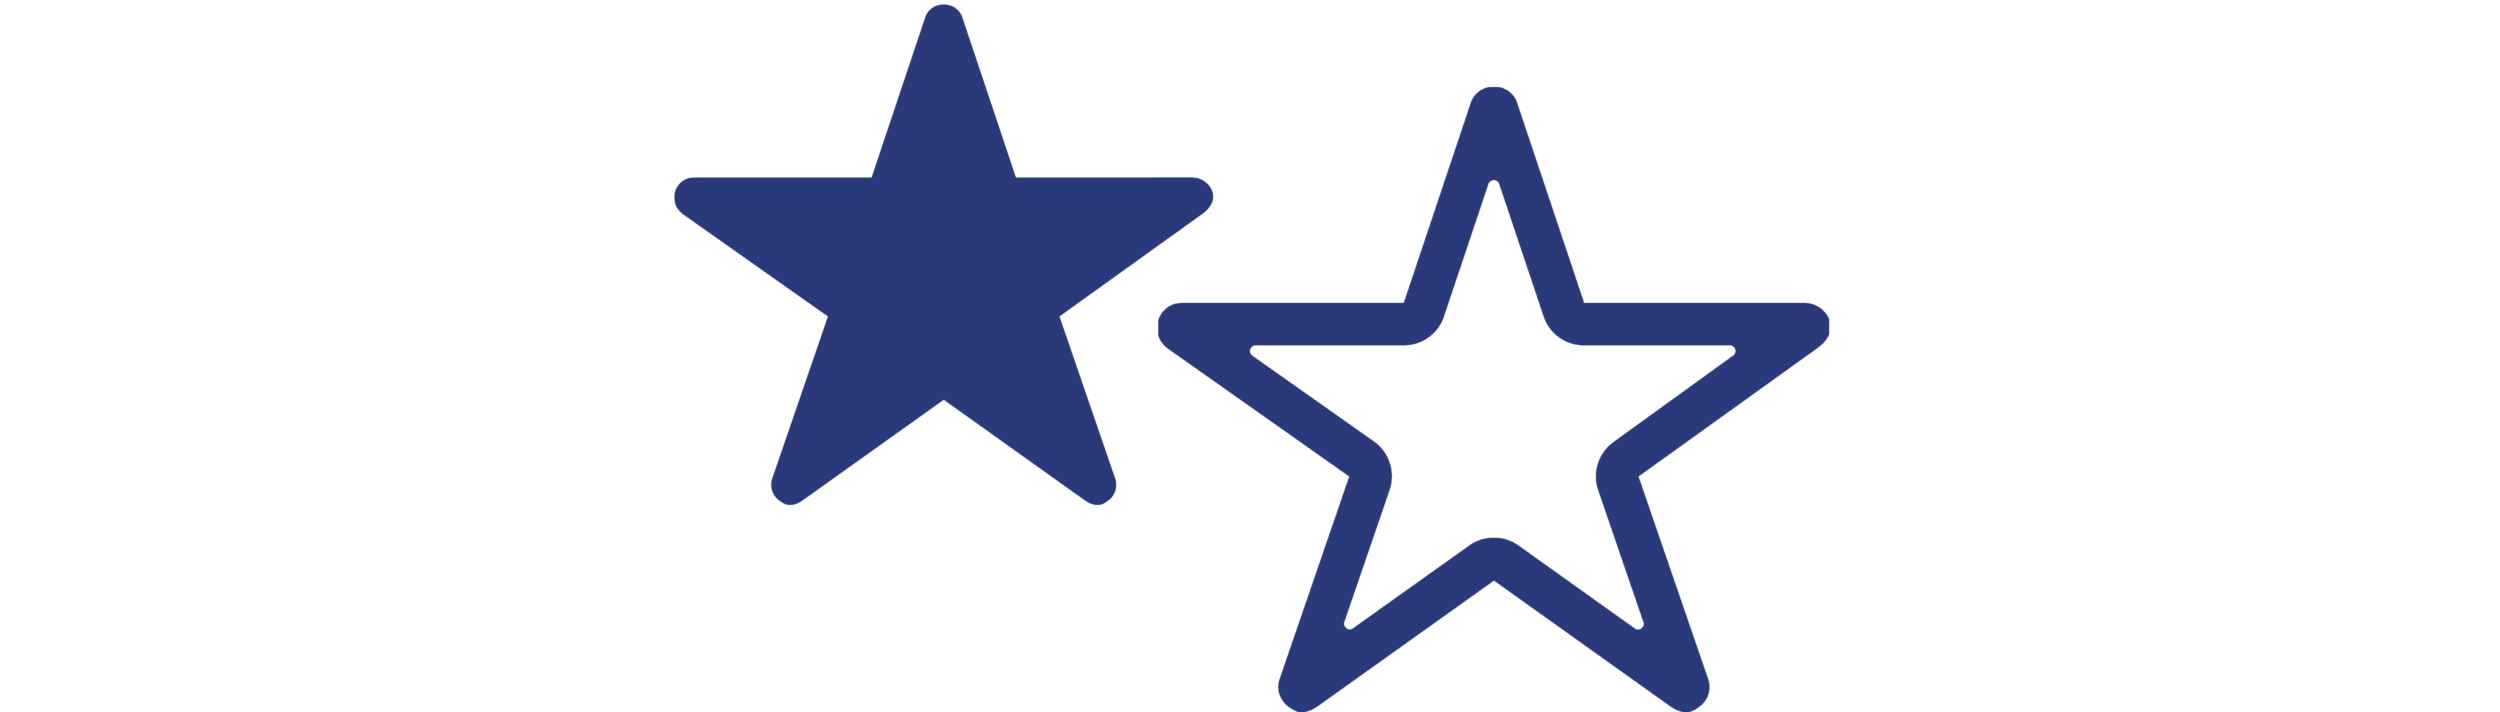 two-stars-blue.png